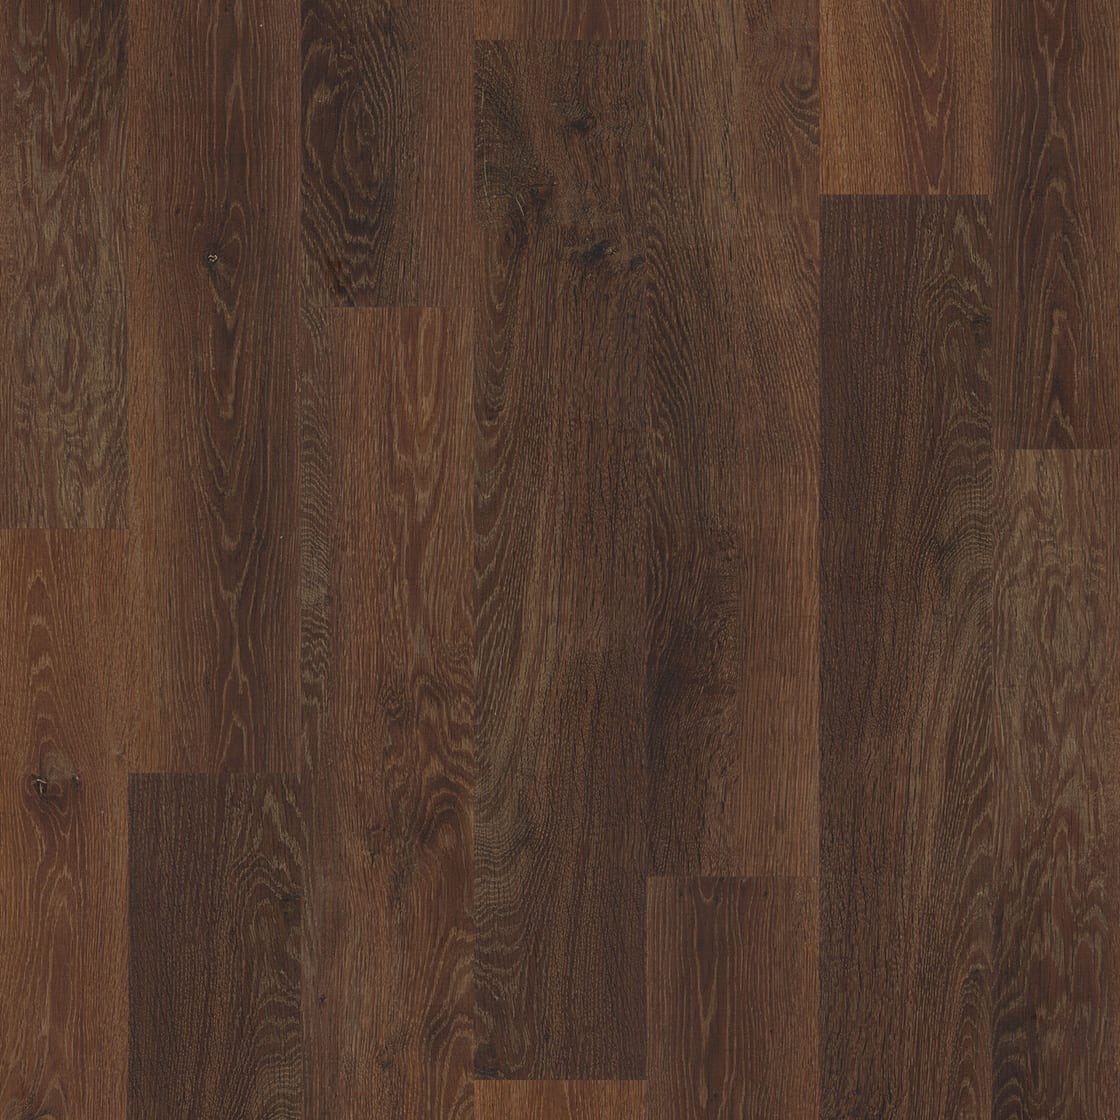 Karndean Knight Tile Wood Mckenzie Amp Willis